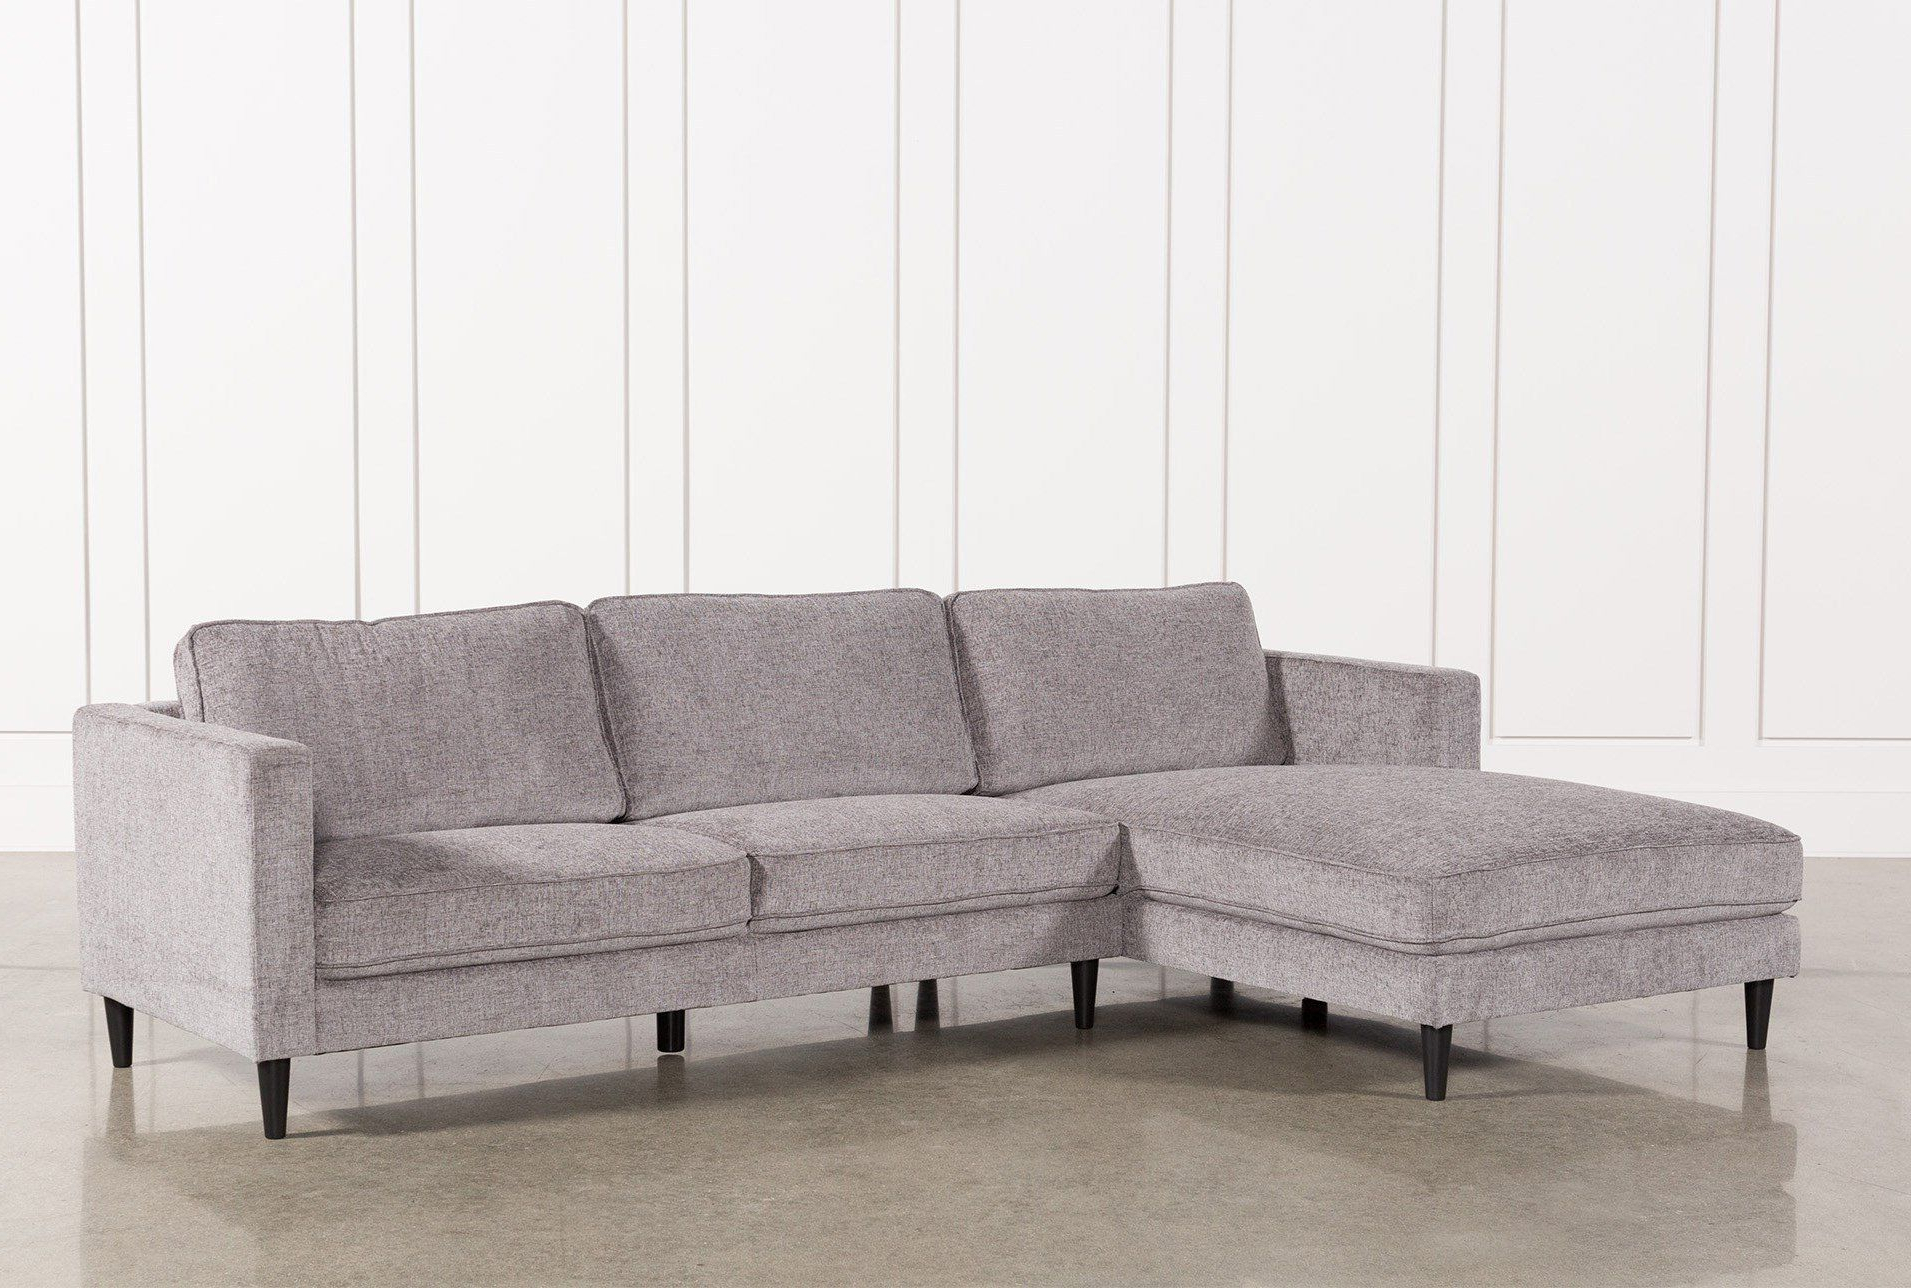 Avery 2 Piece Sectionals With Raf Armless Chaise With Current Cosmos Grey 2 Piece Sectional W/laf Chaise (View 7 of 20)